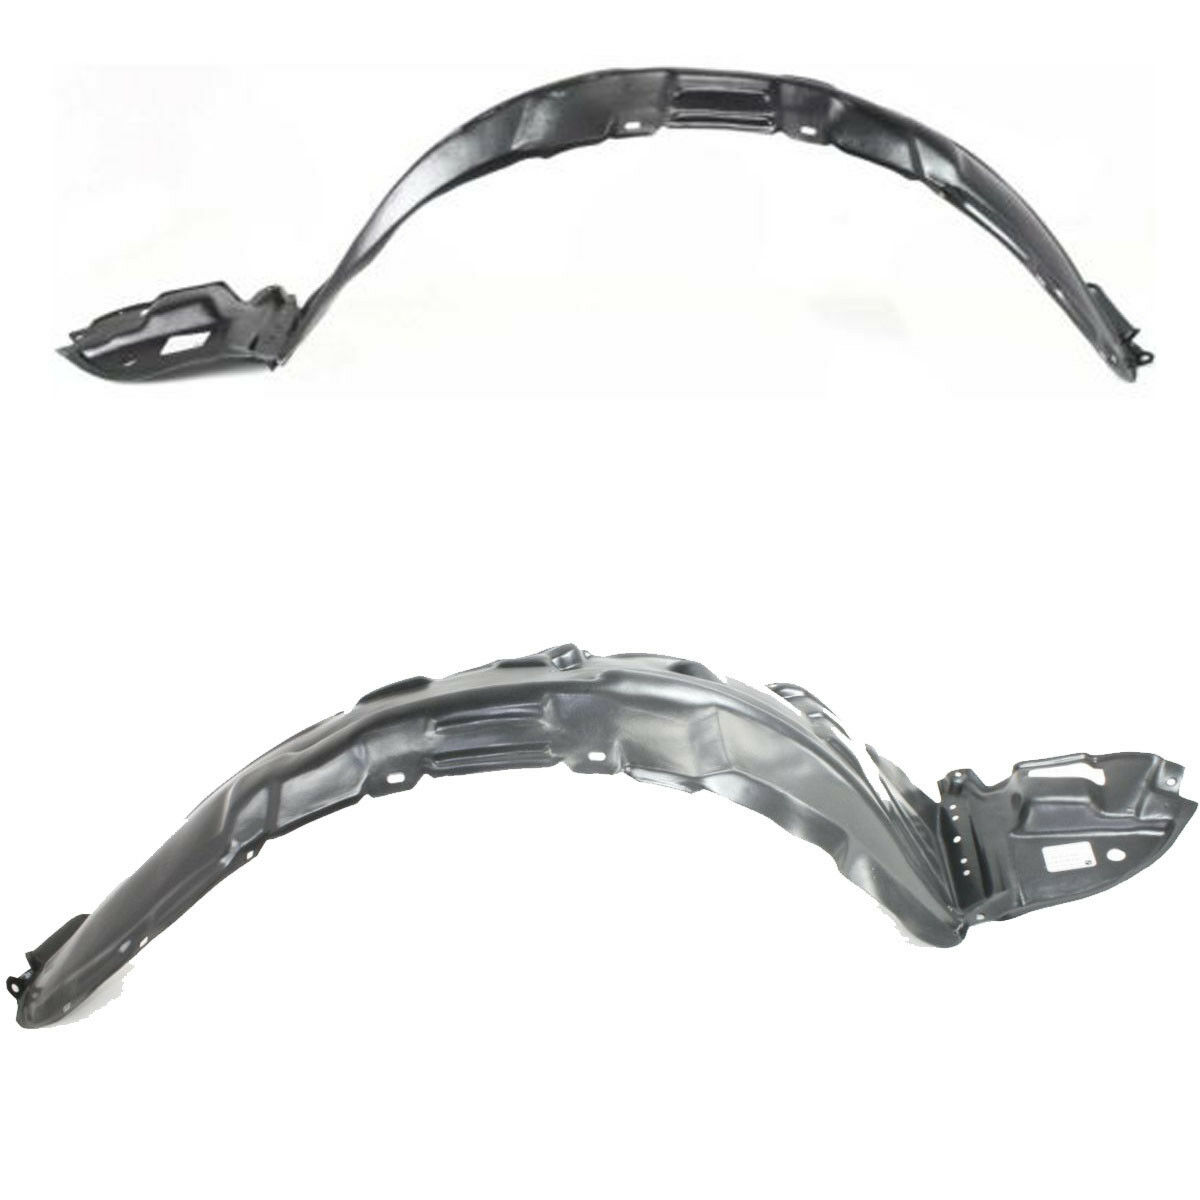 New Front Set of 2 LH /& RH Side Fender Fits Toyota Camry